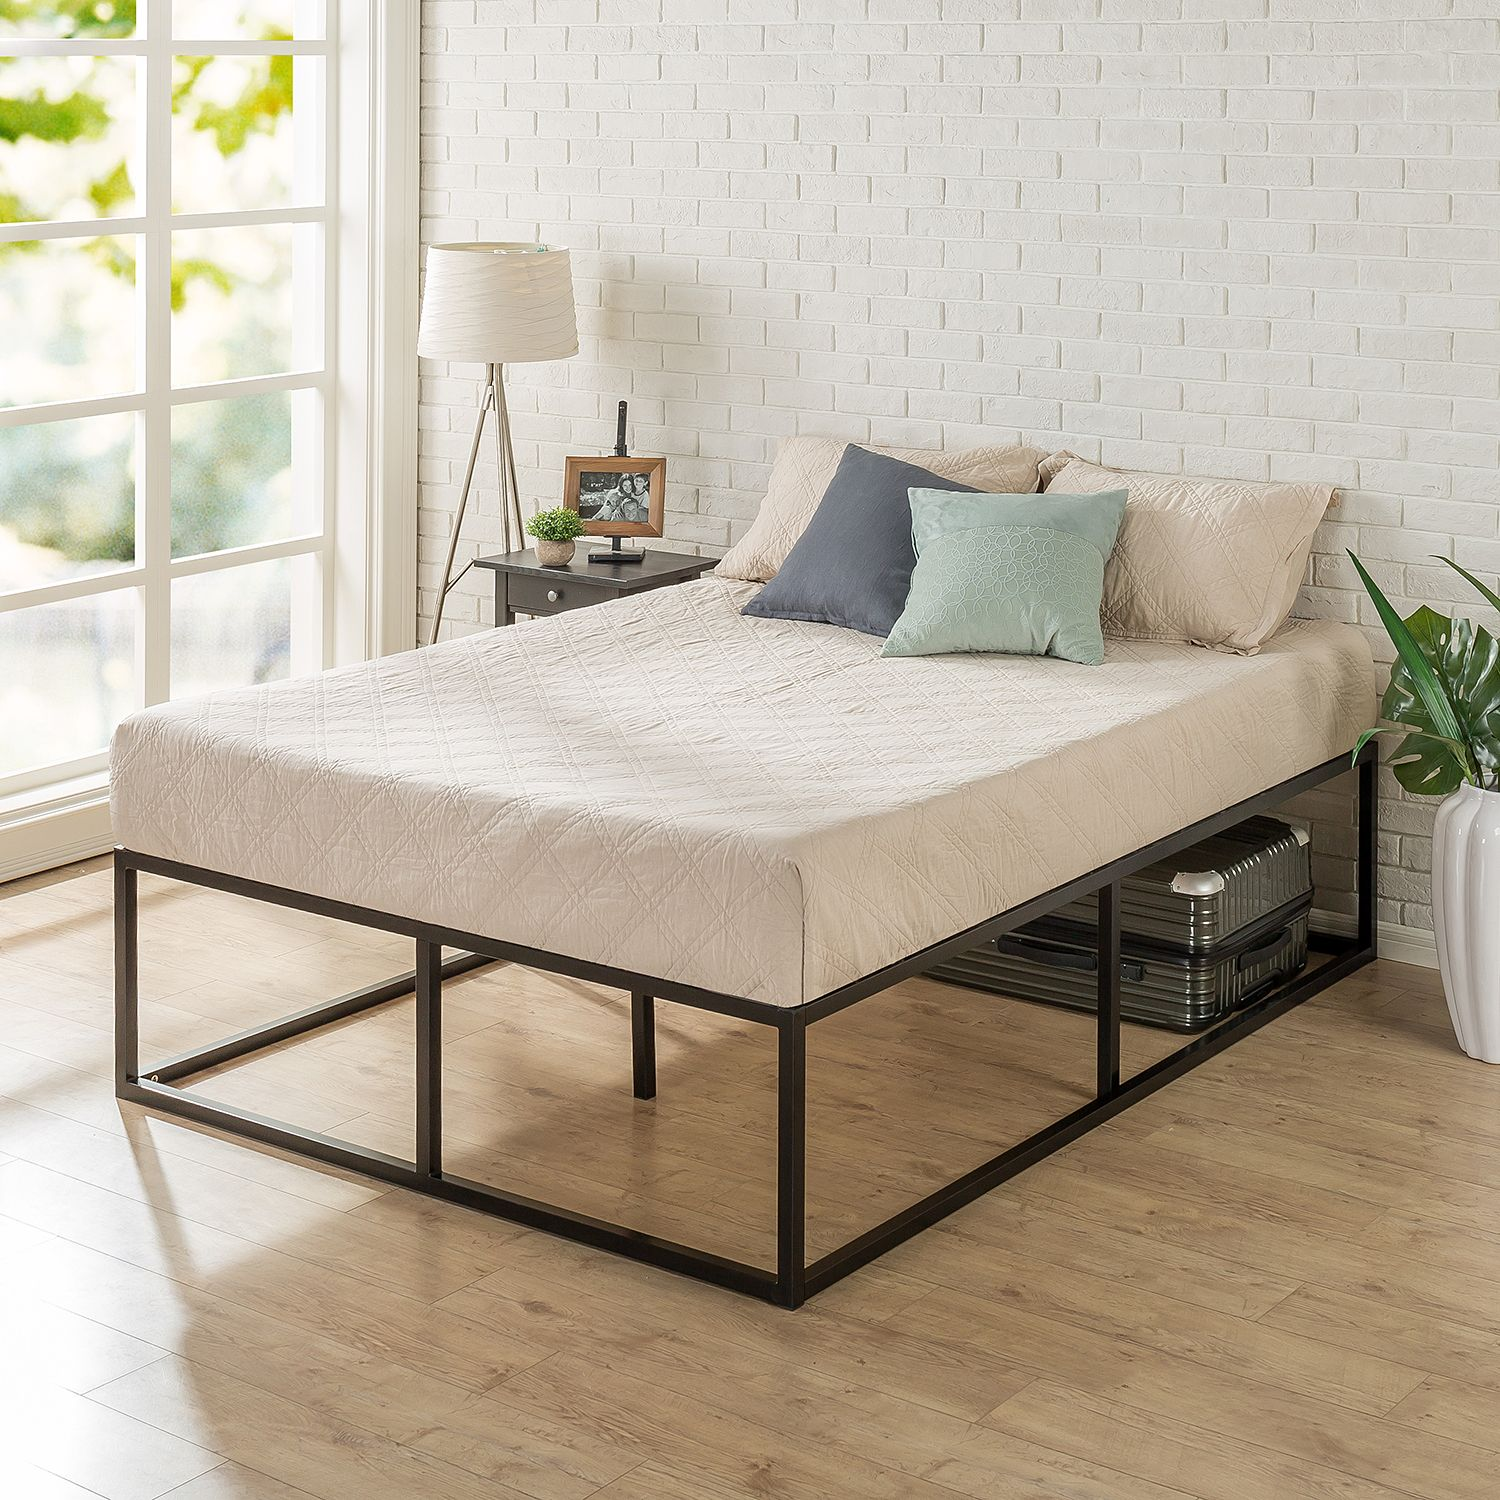 Pin On Platform Bed Frame